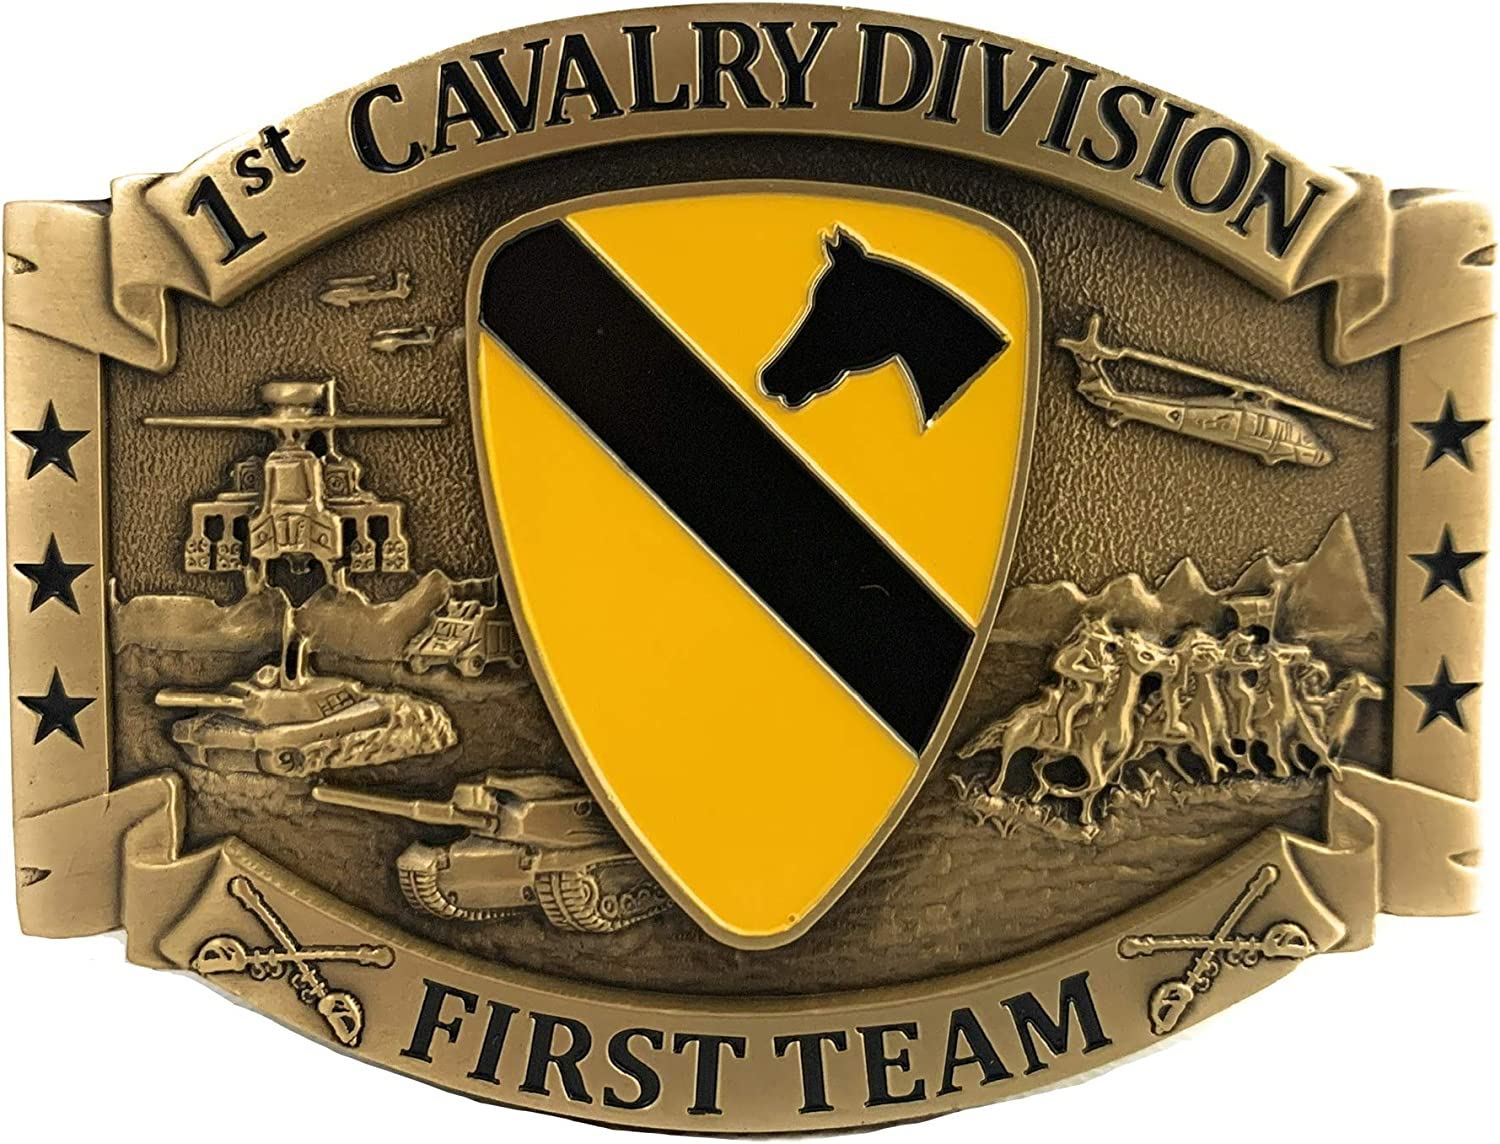 US Army 1st Cavalry Divison CSIB First Team Americas Solid Bro All Max 65% OFF stores are sold